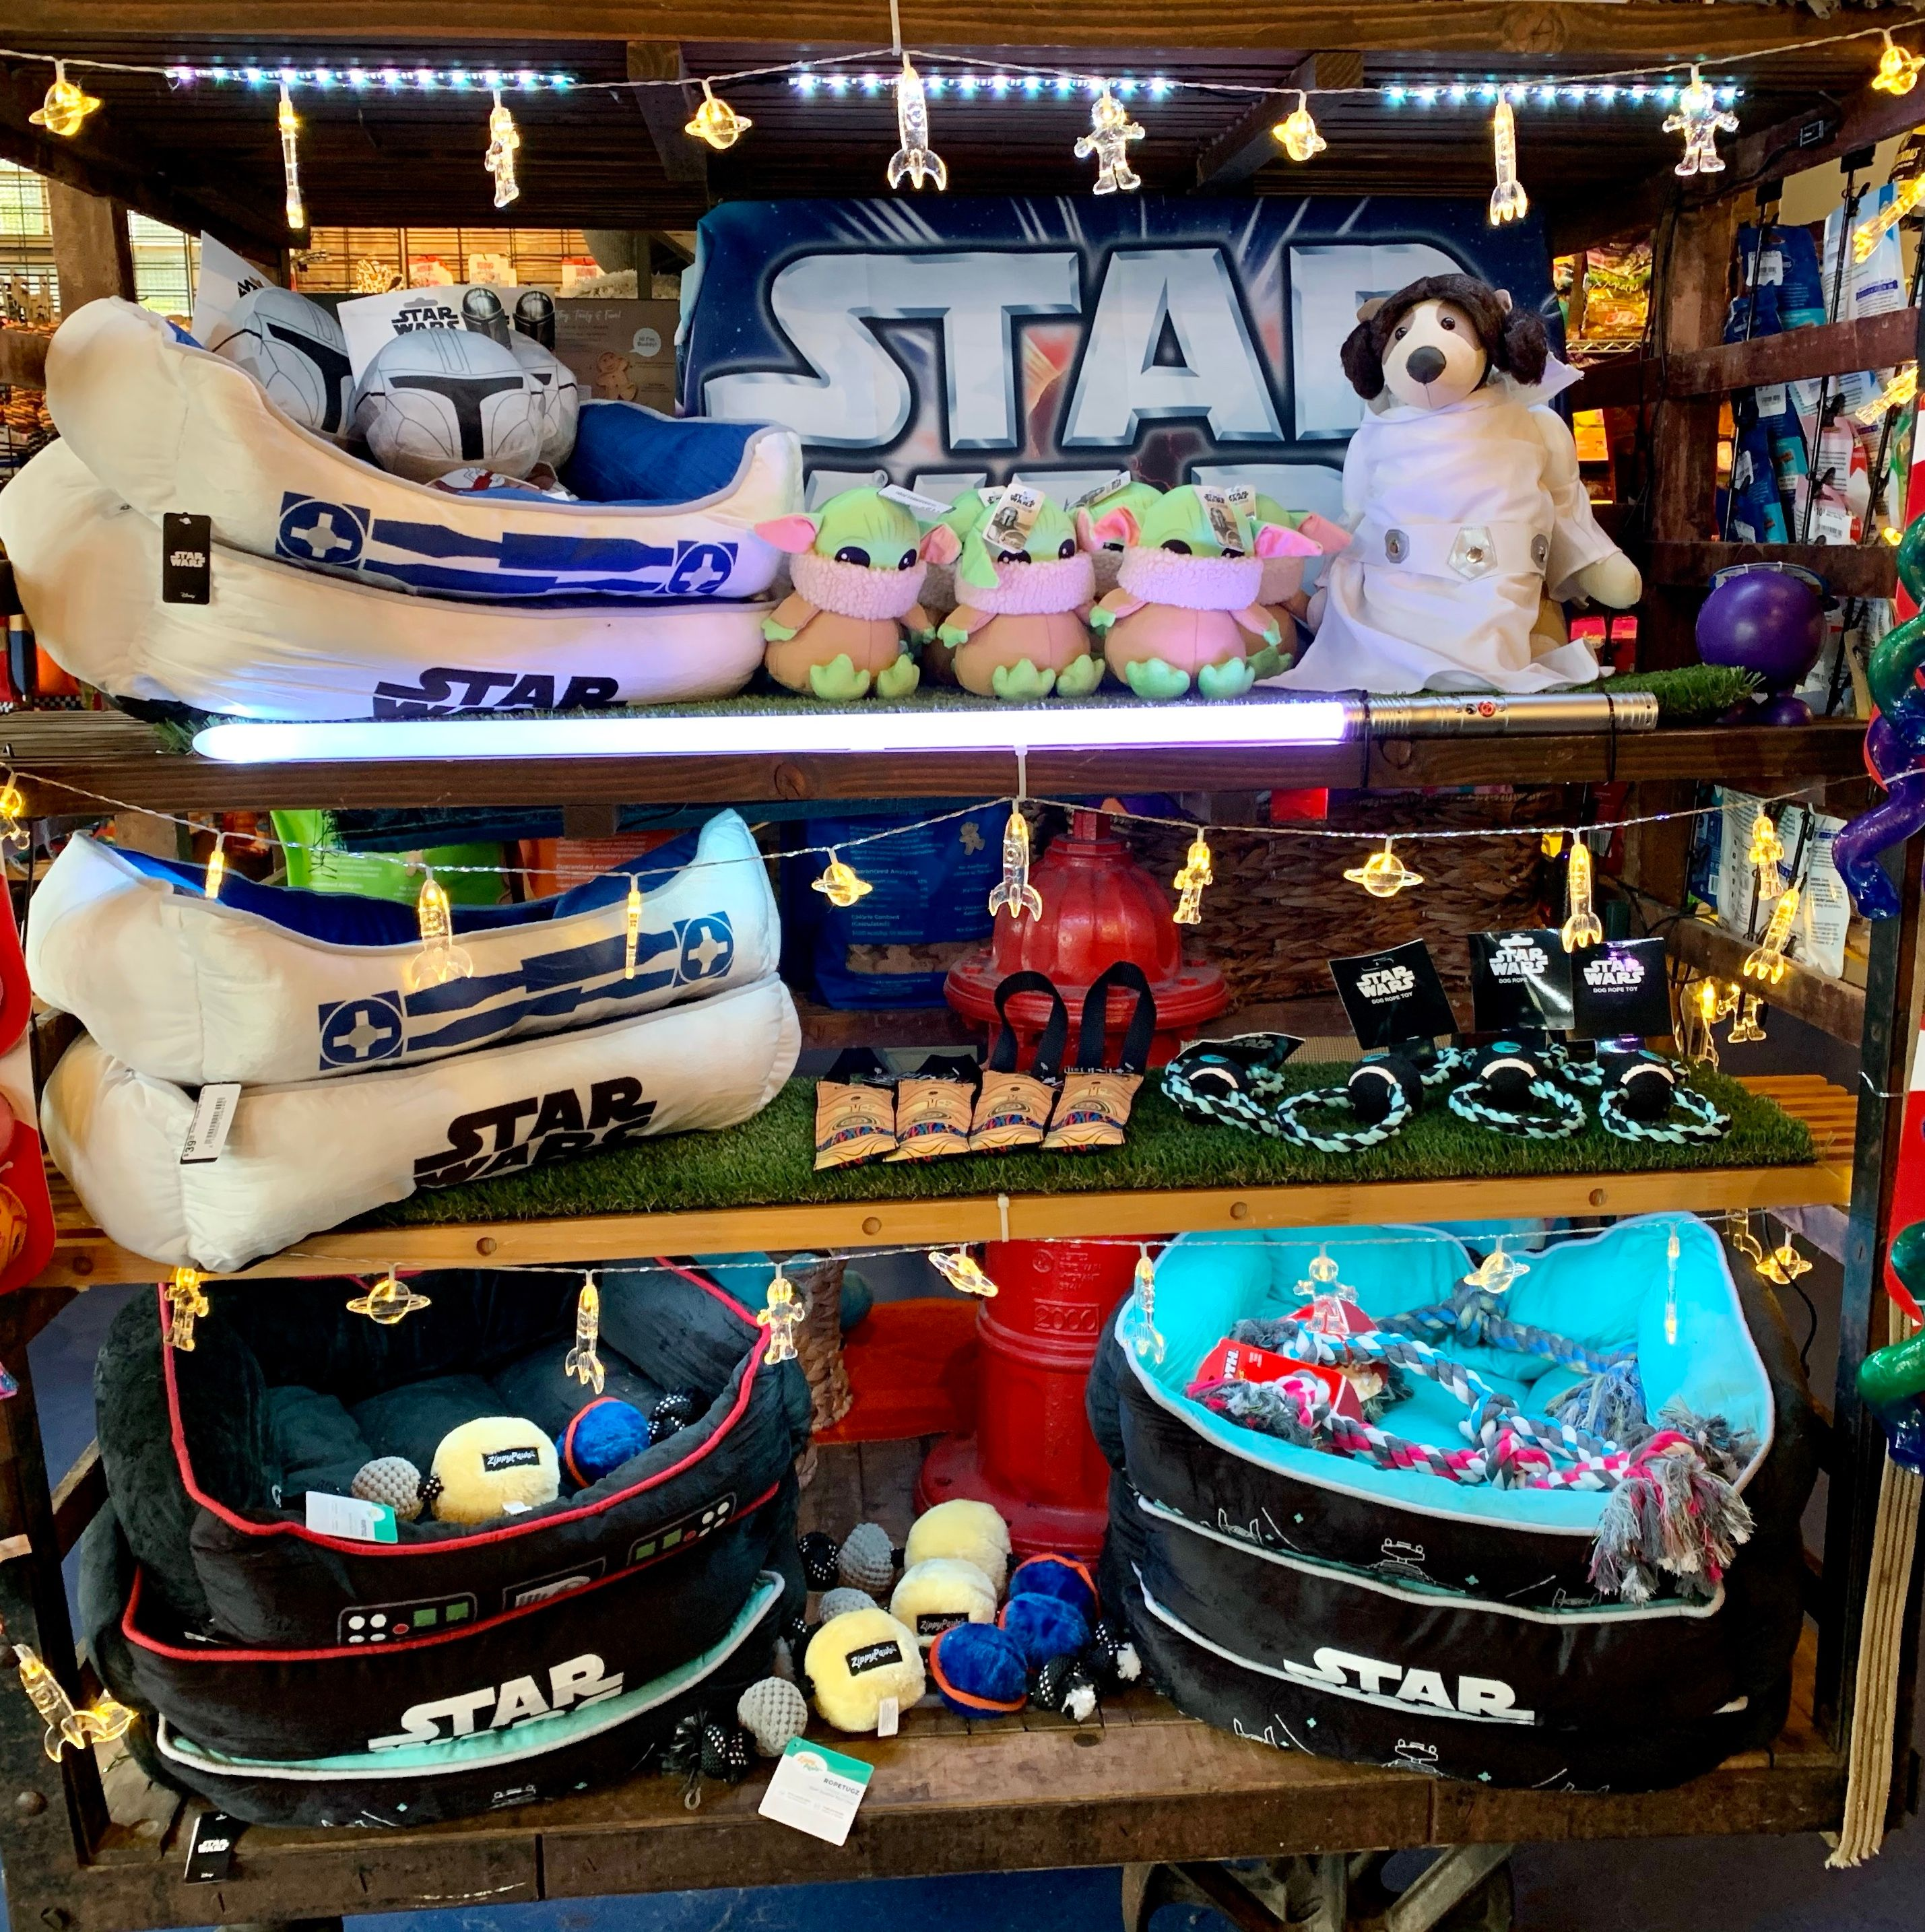 Urban Pooch Star Wars Display 2021